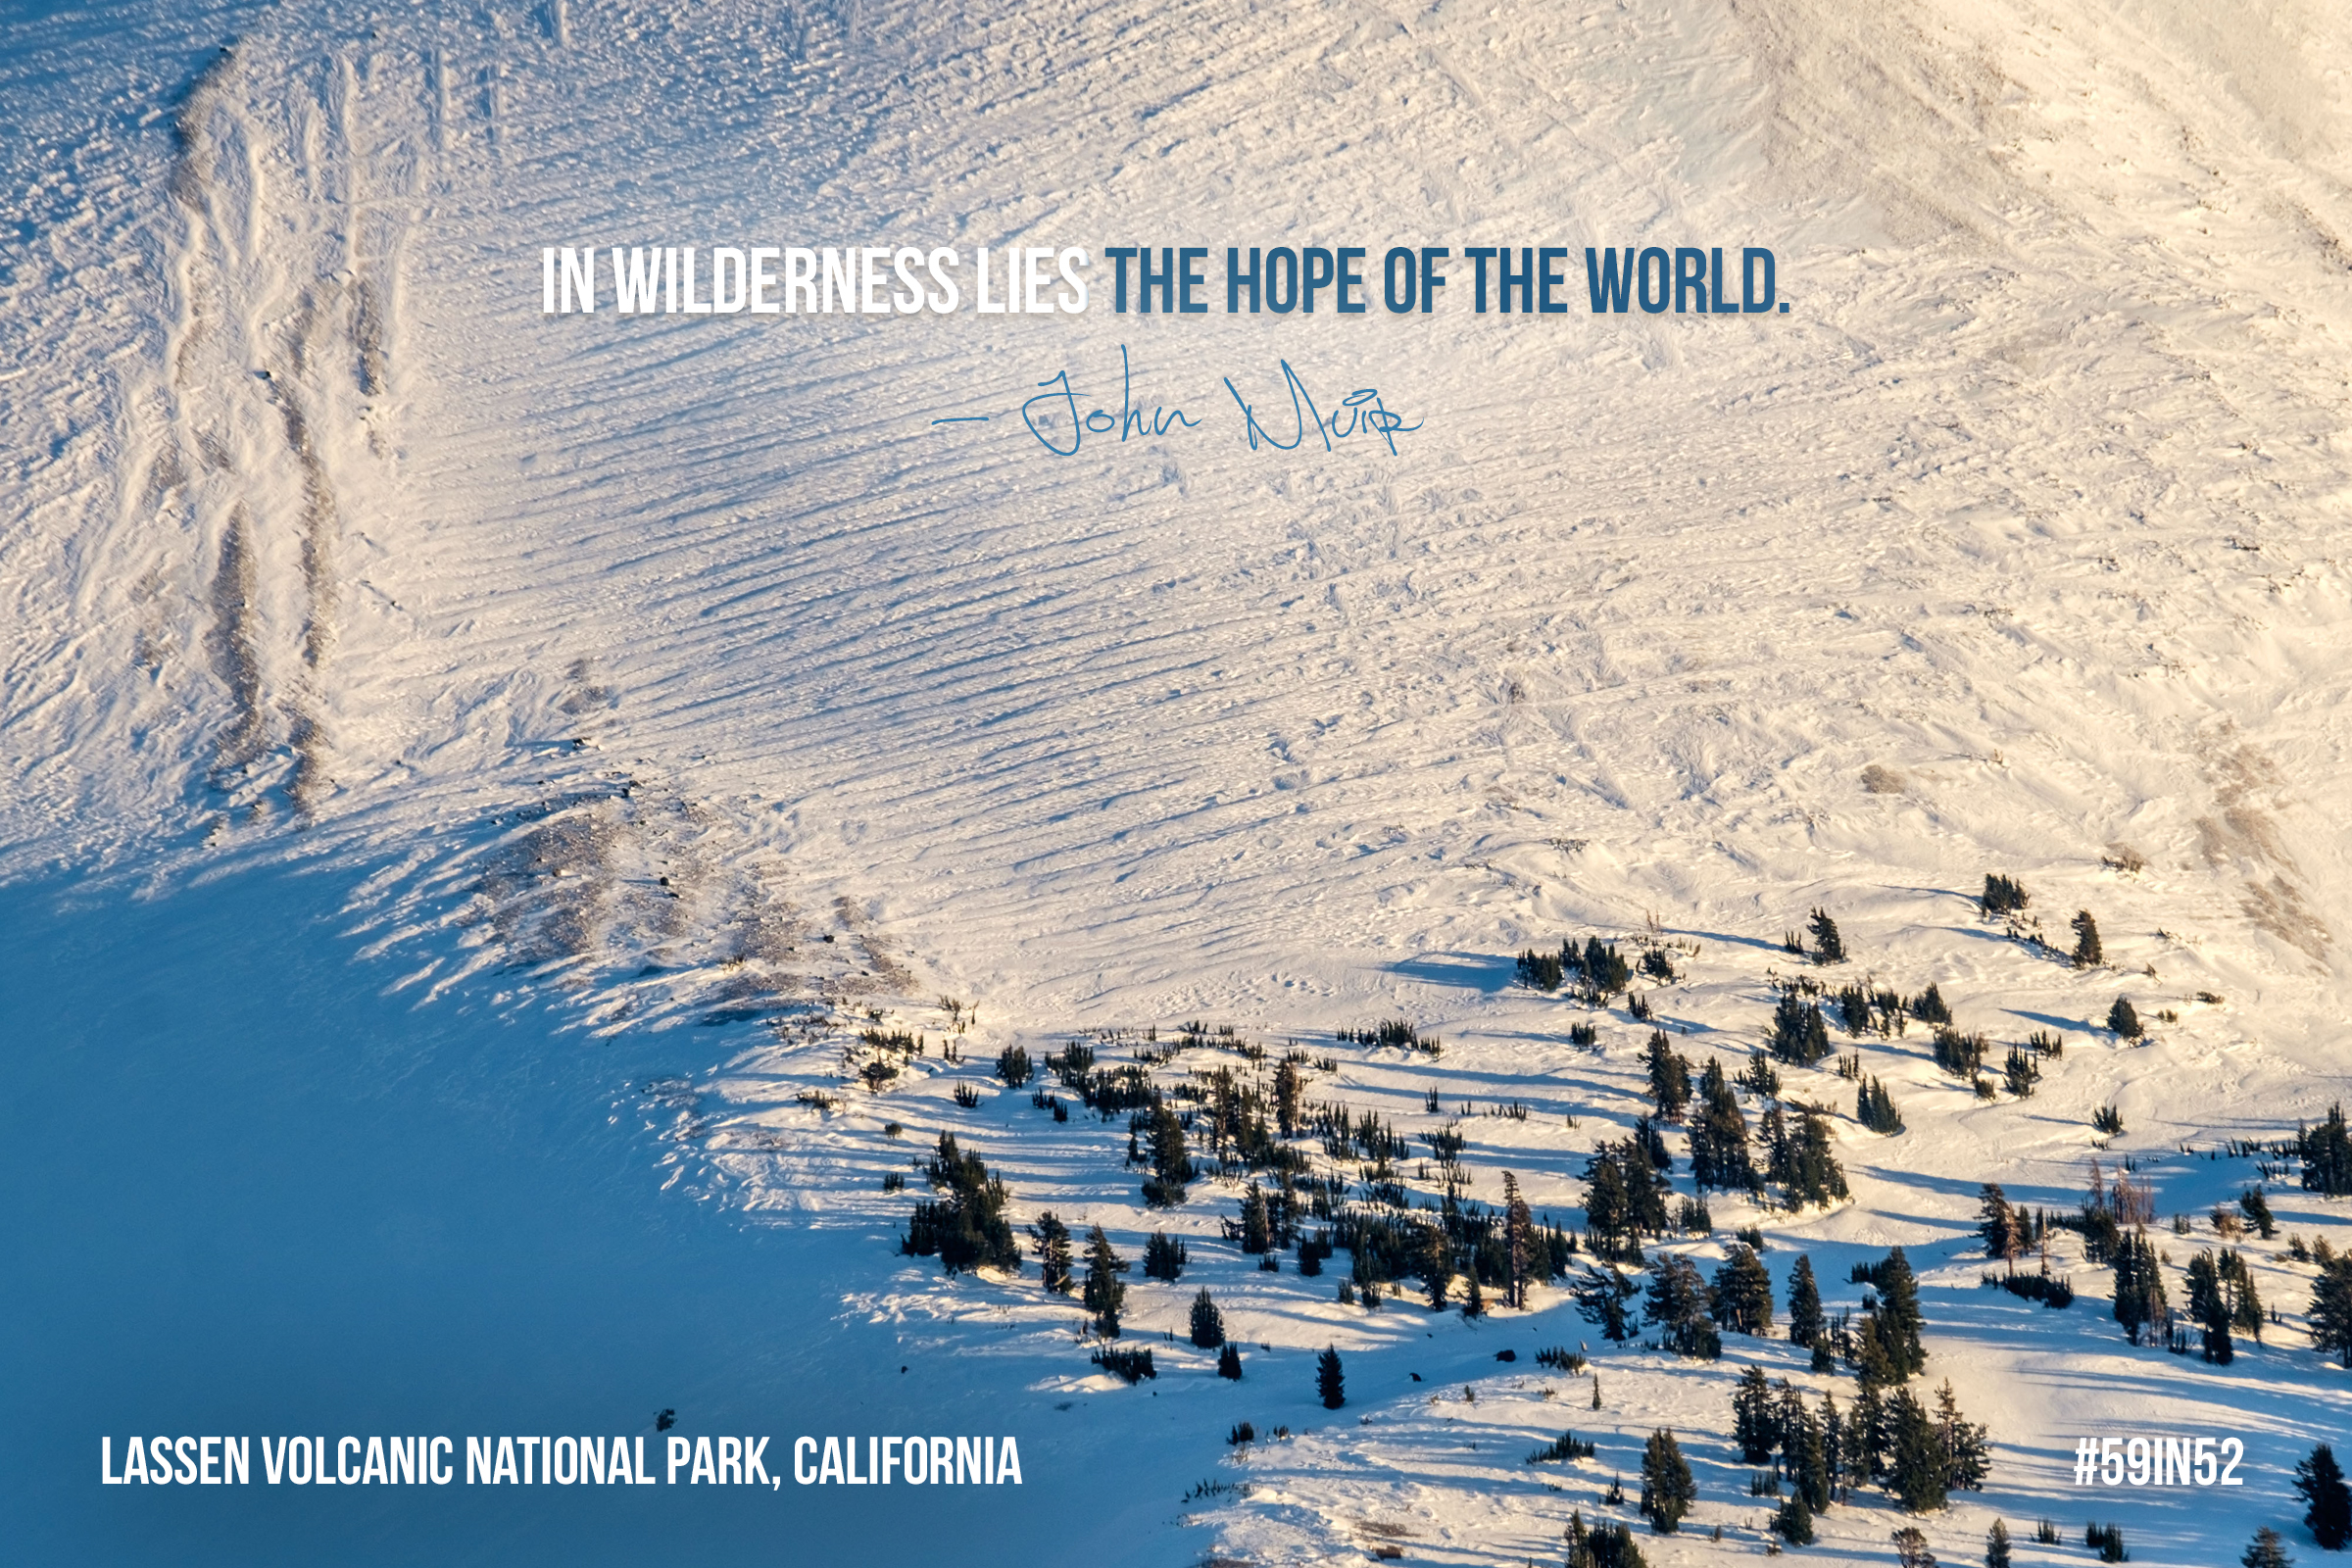 """In wilderness lies the hope of the world."" - John Muir"